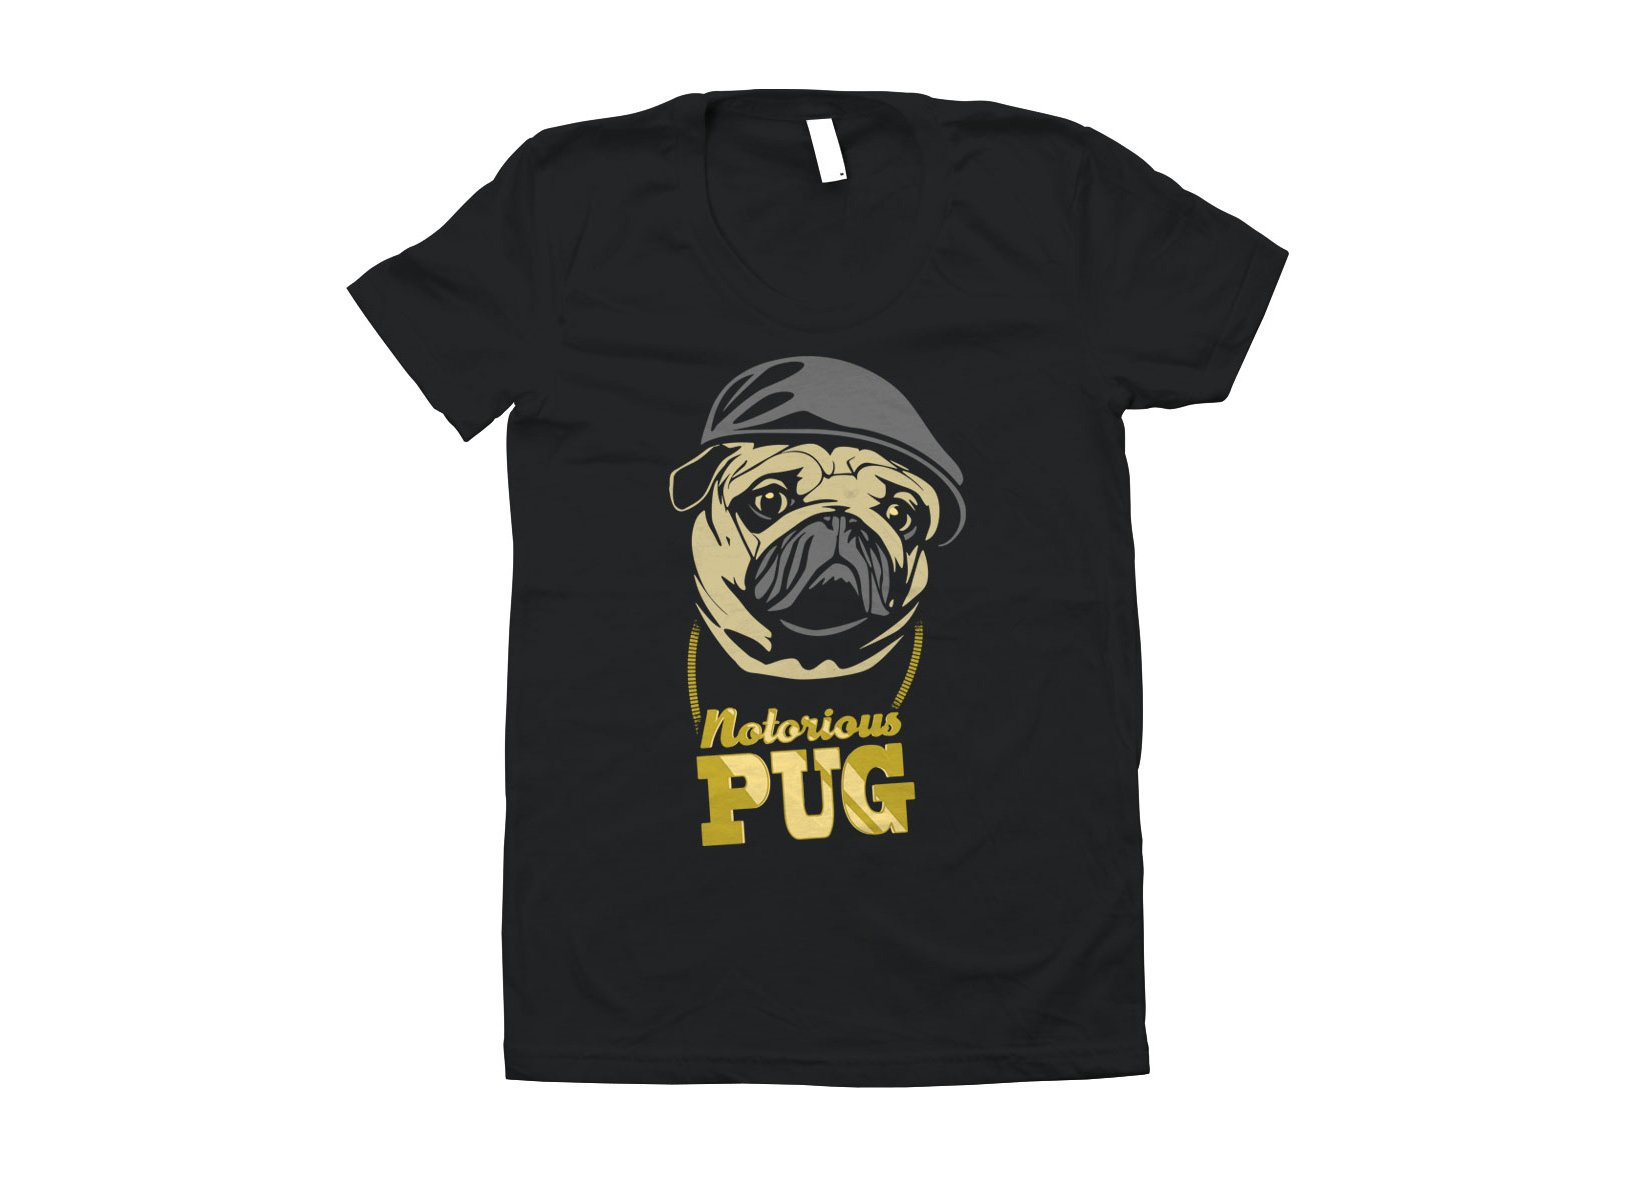 Notorious PUG on Juniors T-Shirt